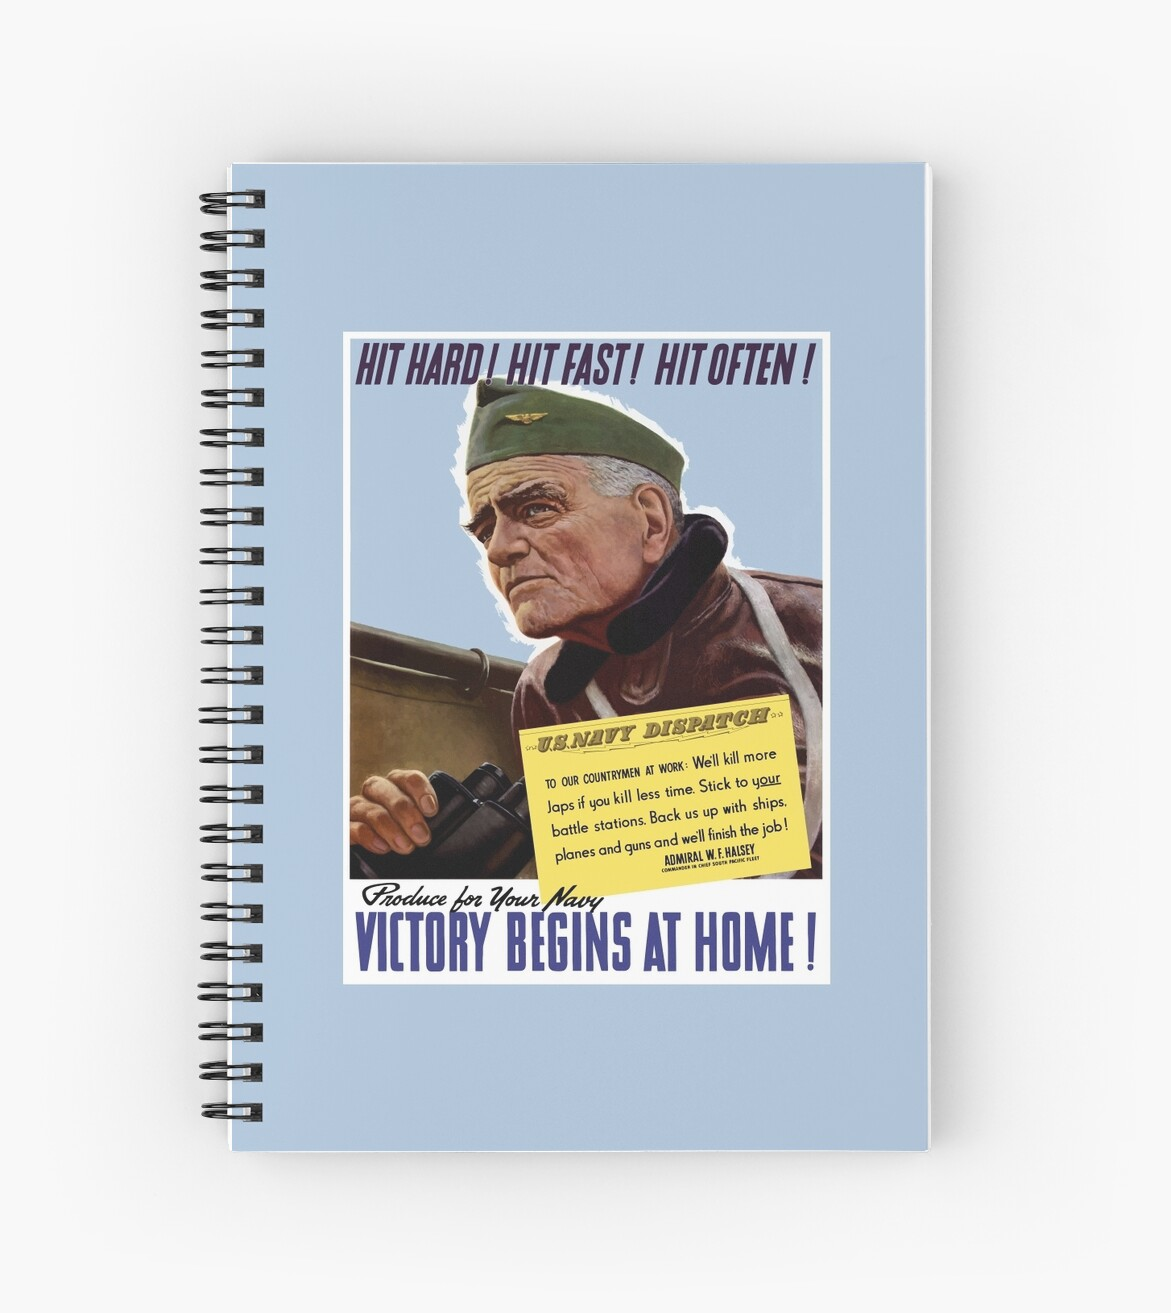 Produce For Your Navy - Victory Begins At Home by warishellstore